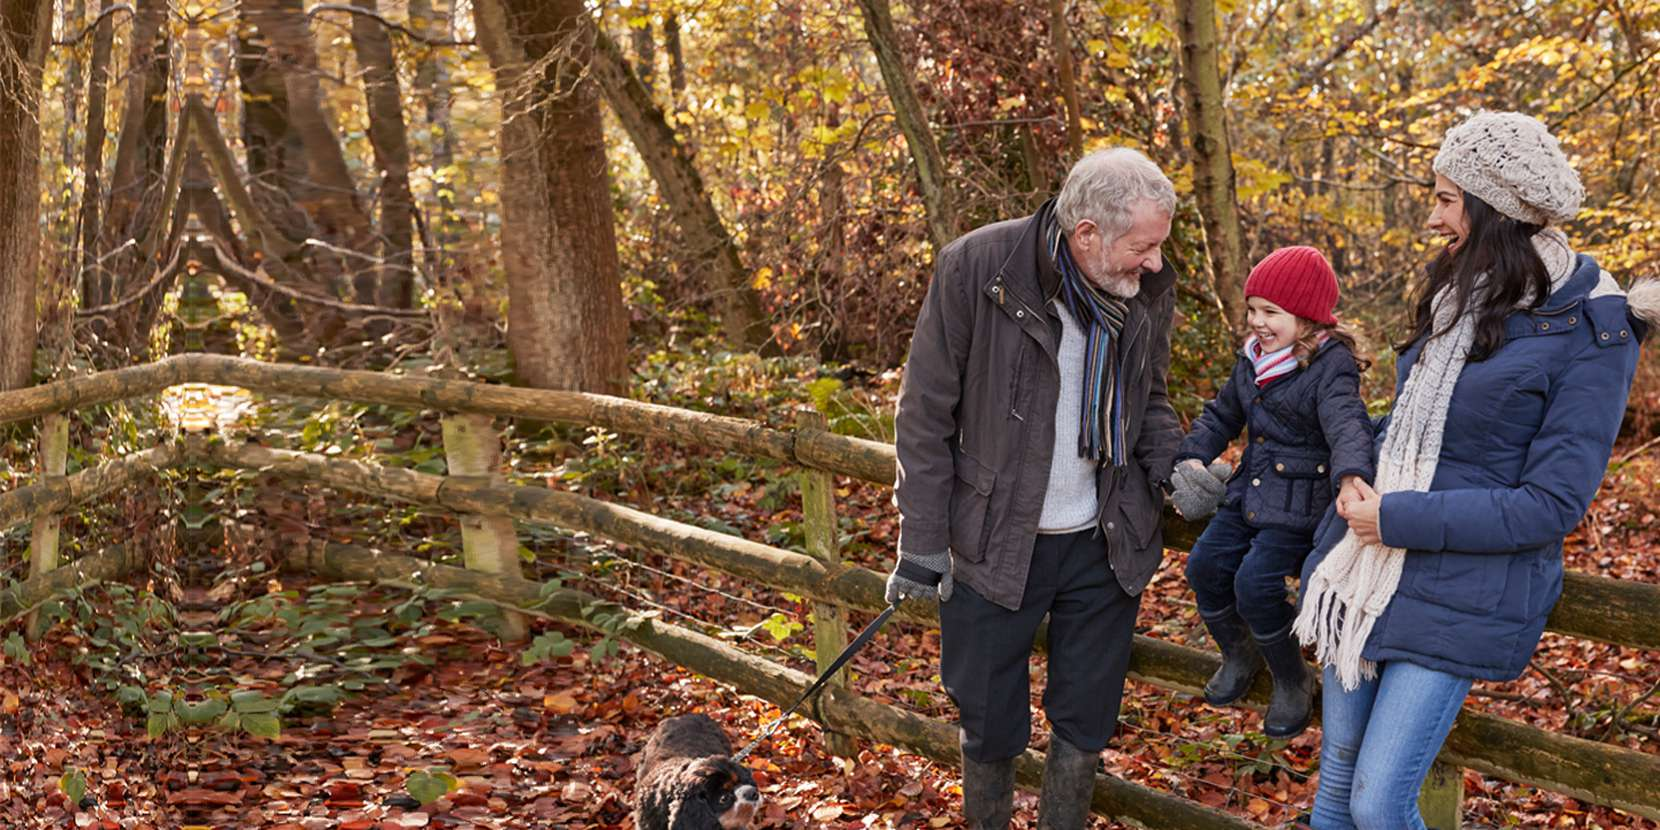 Mother child and granddad walking their dog on a leafy path